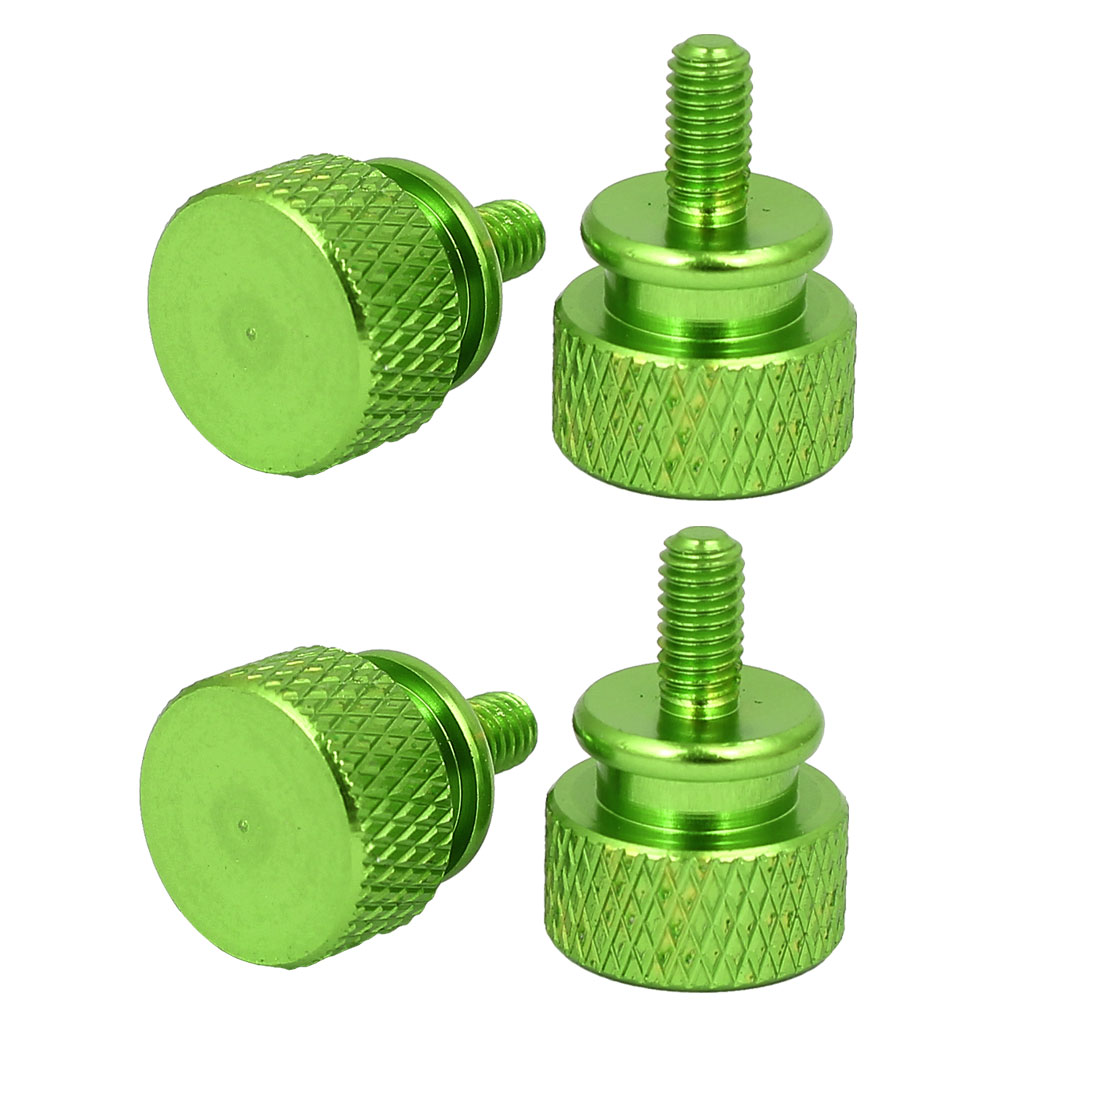 Computer PC Case Fully Threaded Knurled Thumb Screws Green M3.5x7mm 4pcs